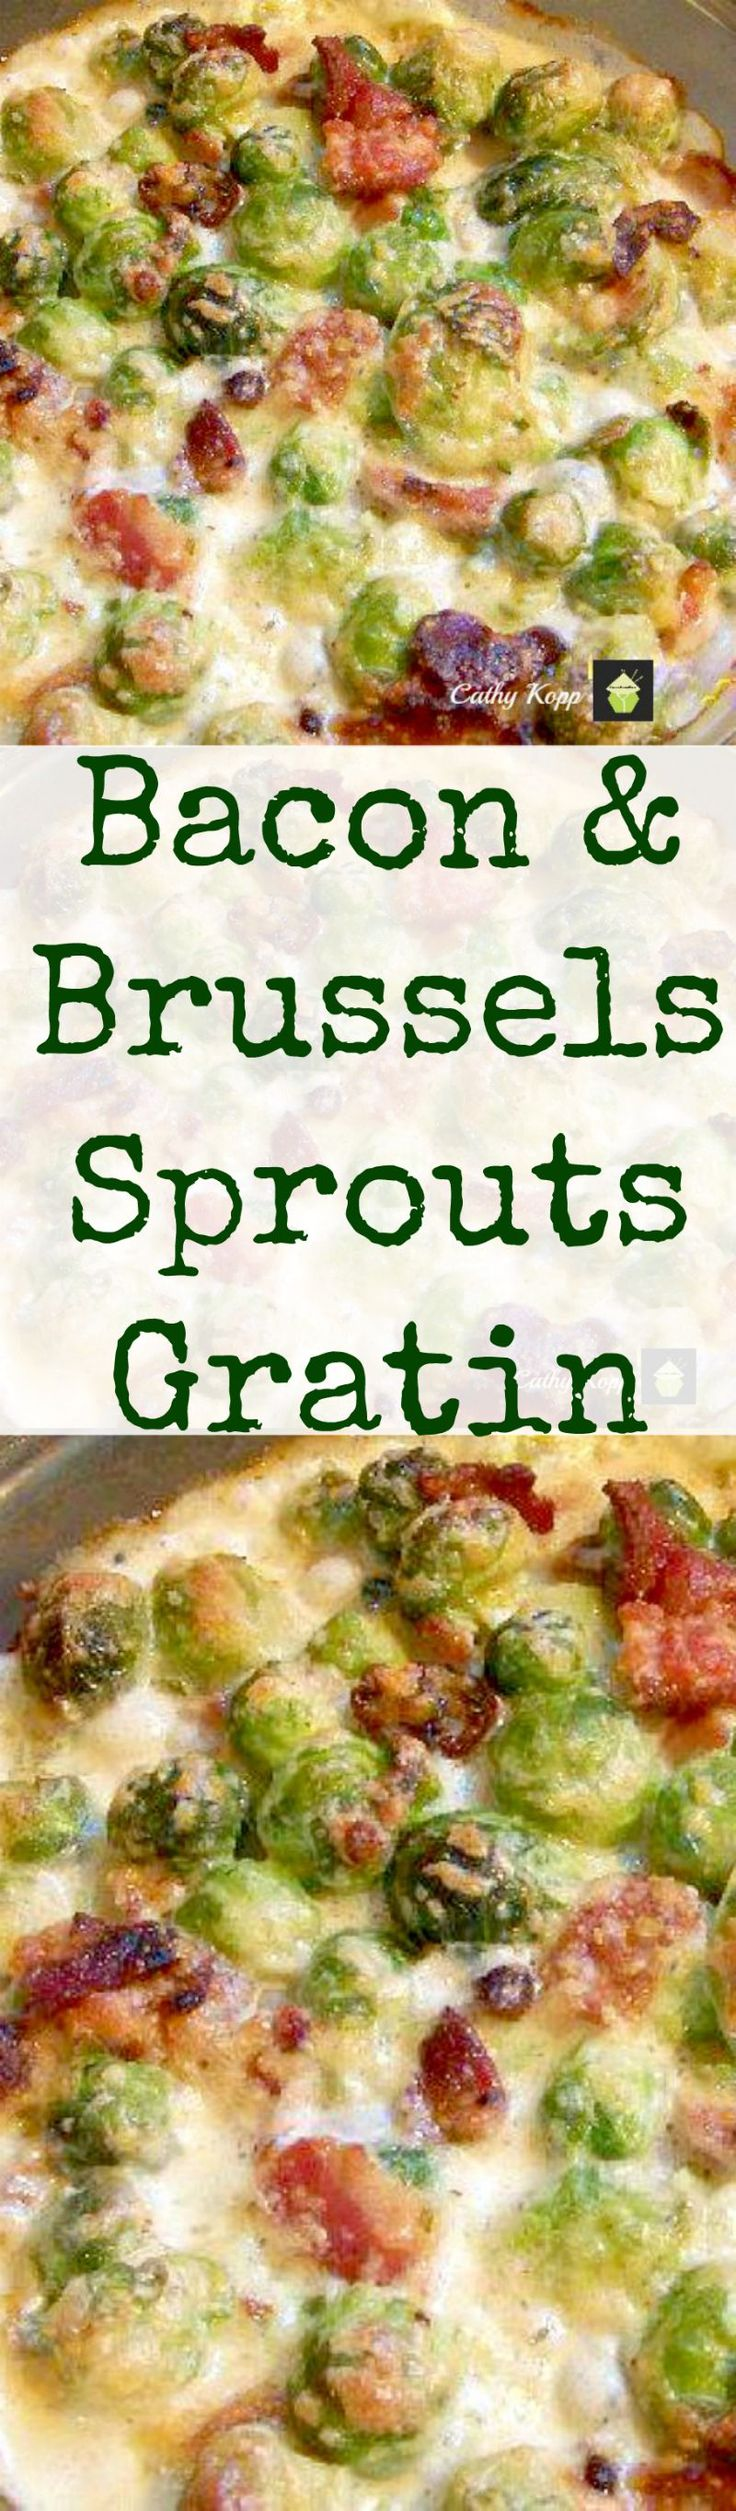 Bacon and Brussels Sprouts Gratin. Bacon, cheese and Brussels Sprouts all baked in a creamy sauce. Sub-pork rinds/Parmesan for bread crumbs